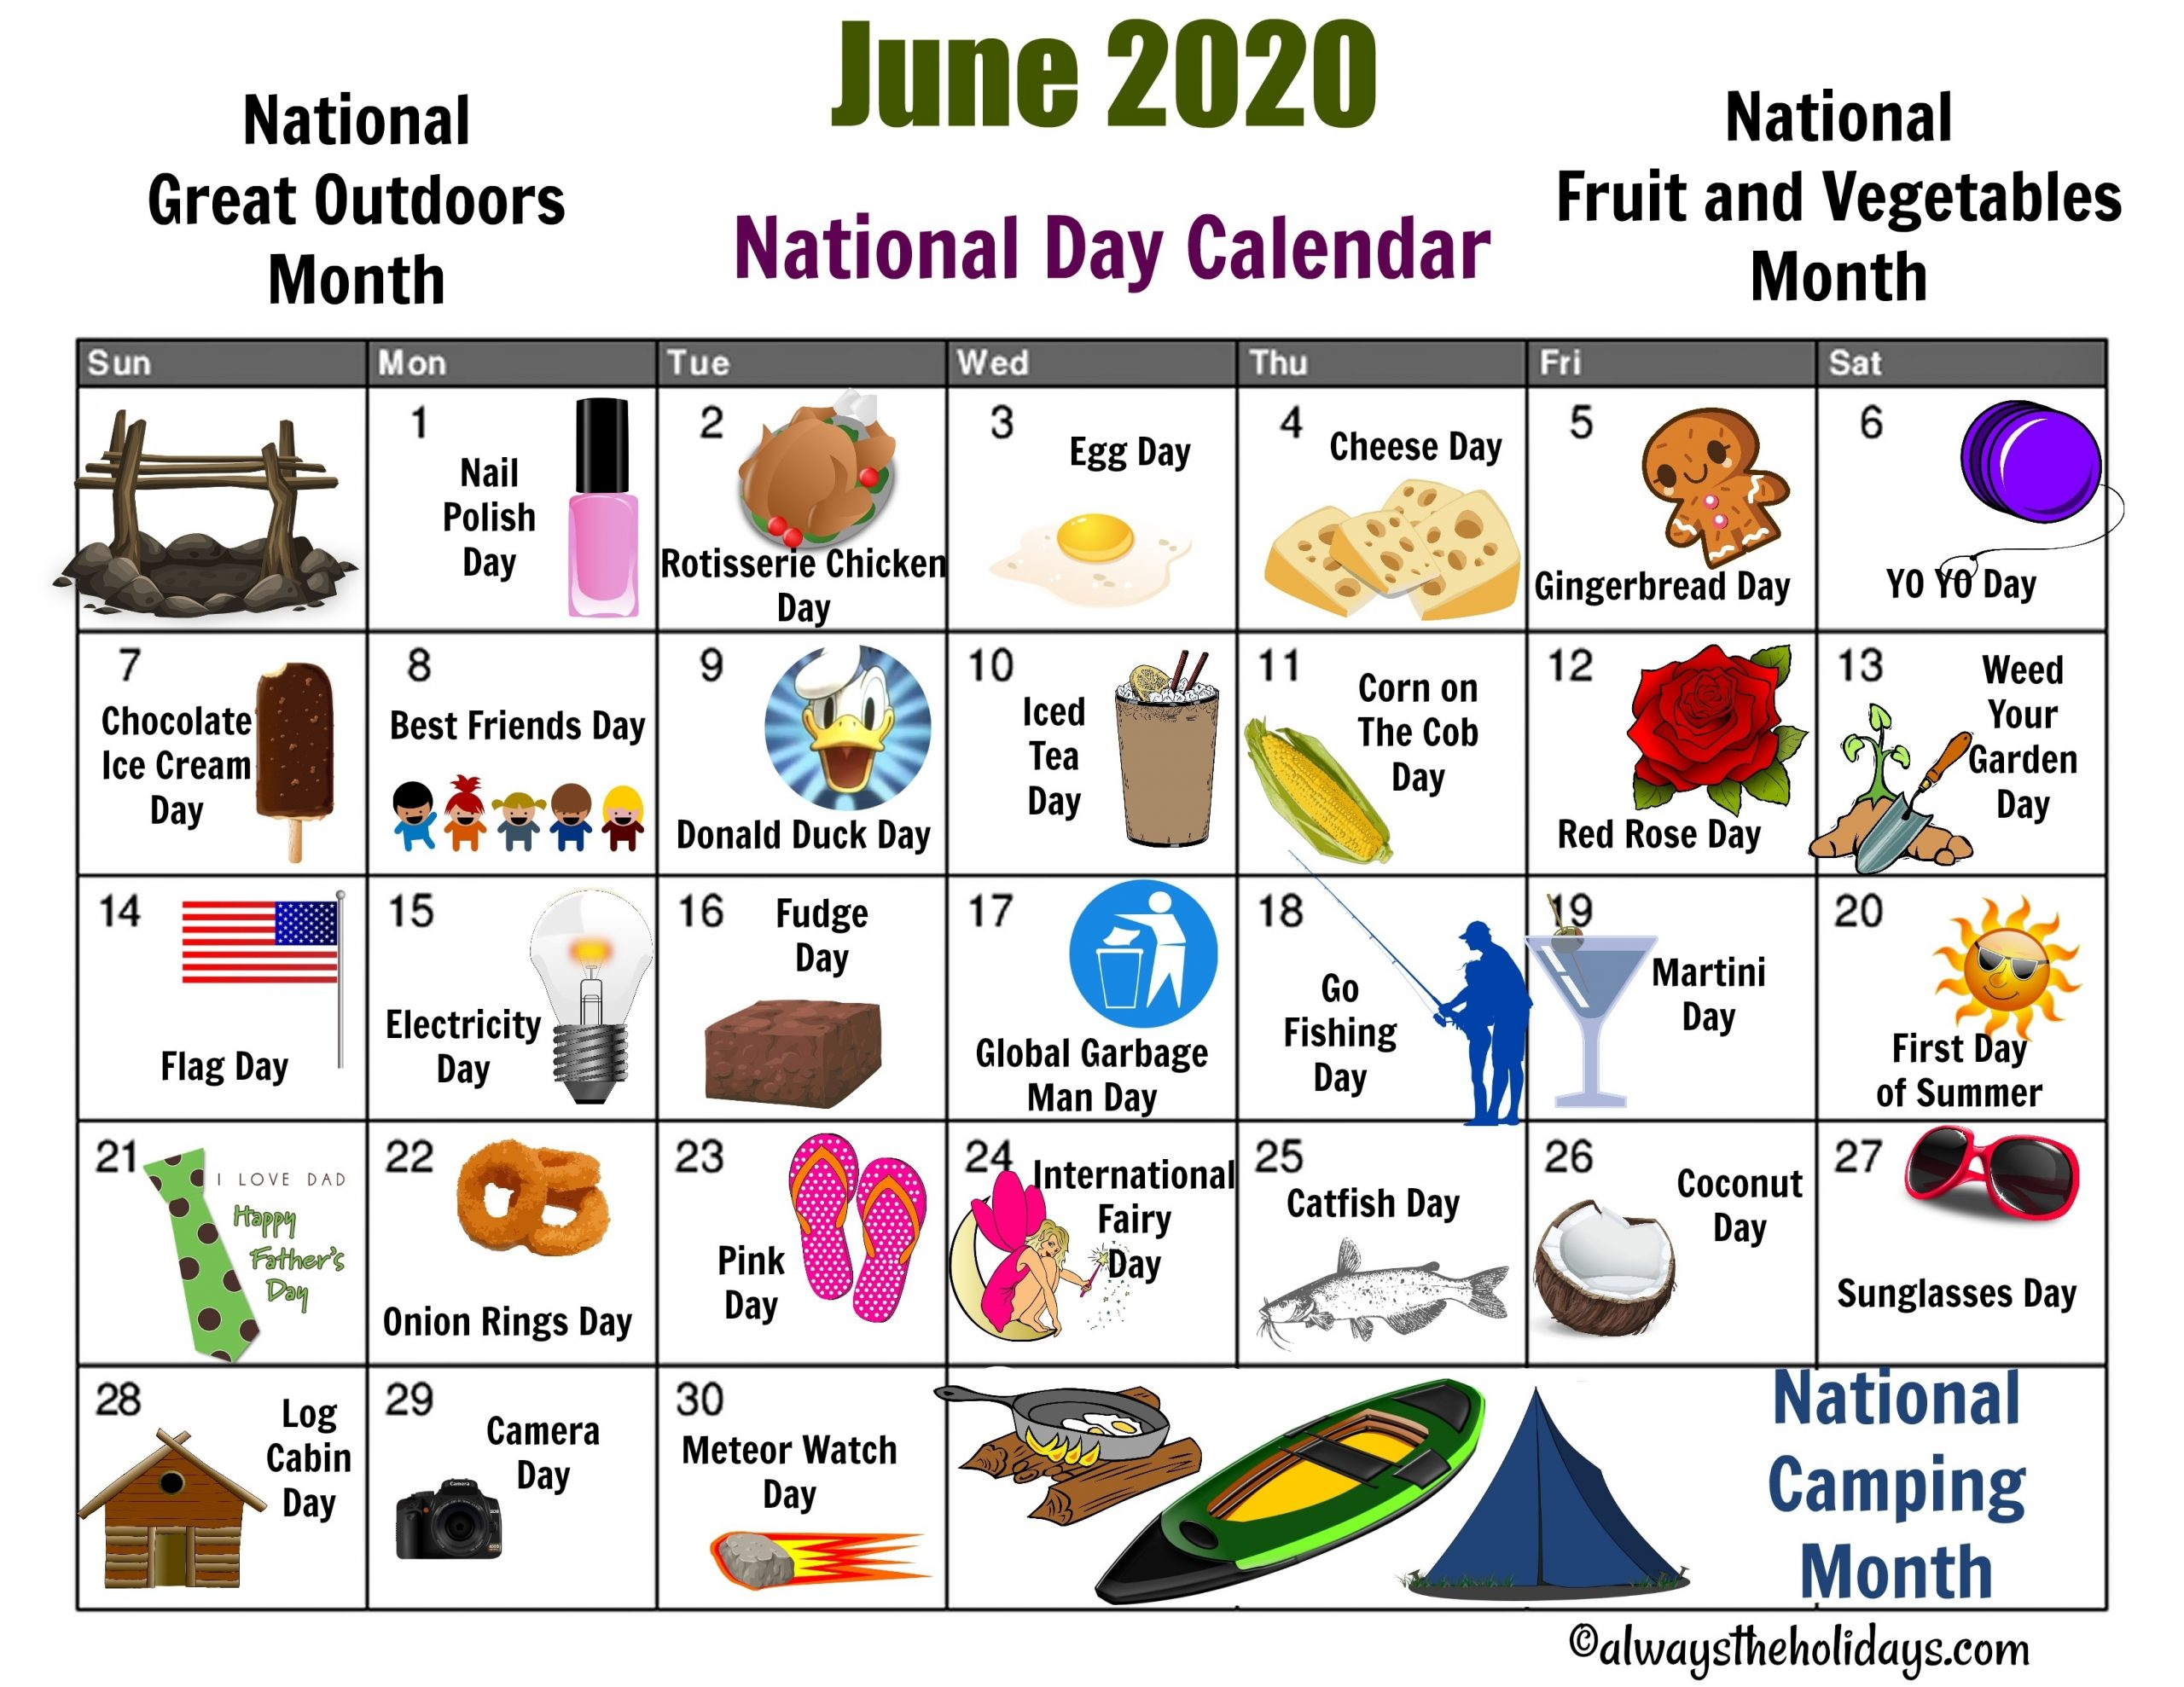 June National Day Calendar Printable - Father'S Day, Camping with regard to 2020 Calendar Of Special Days